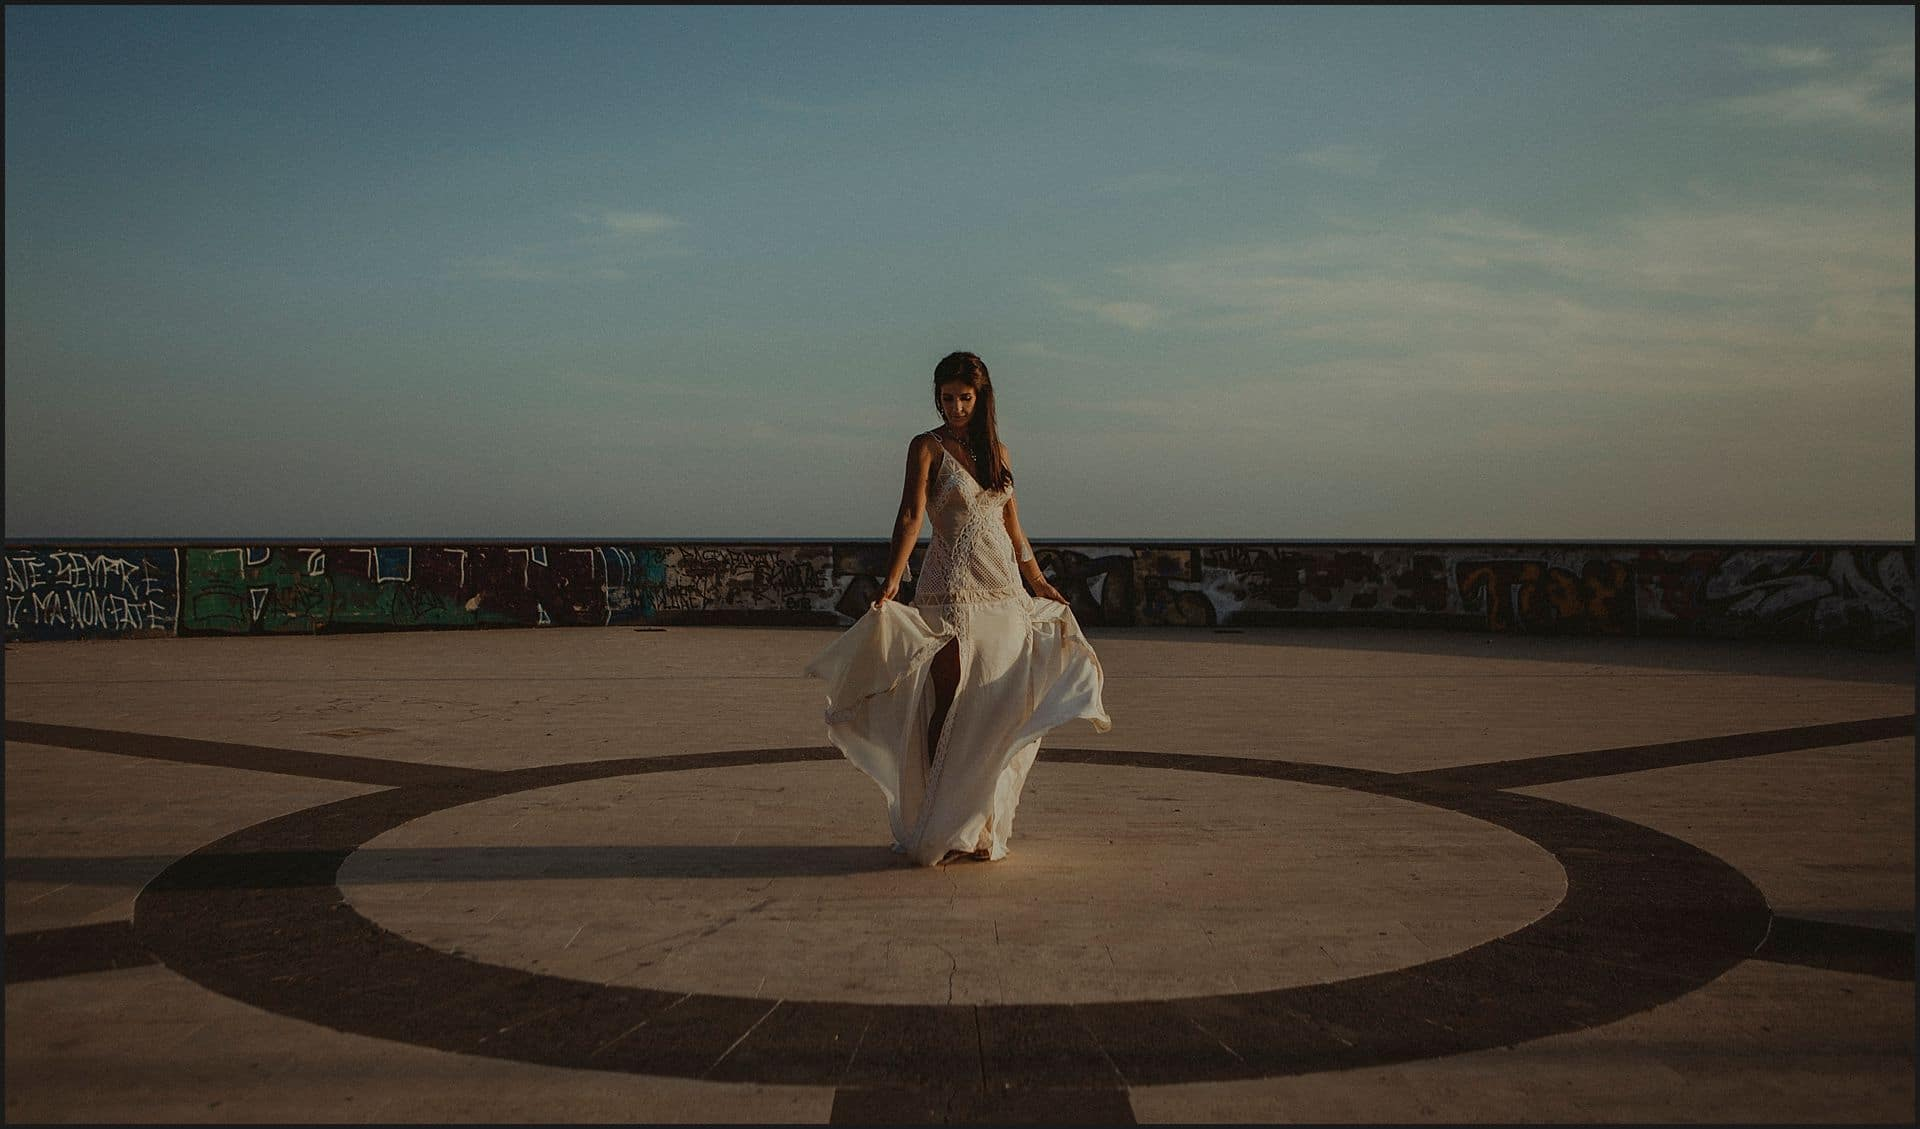 bride, dress, dancing, wedding gown, symmetry, geometries, circle, afternoon light